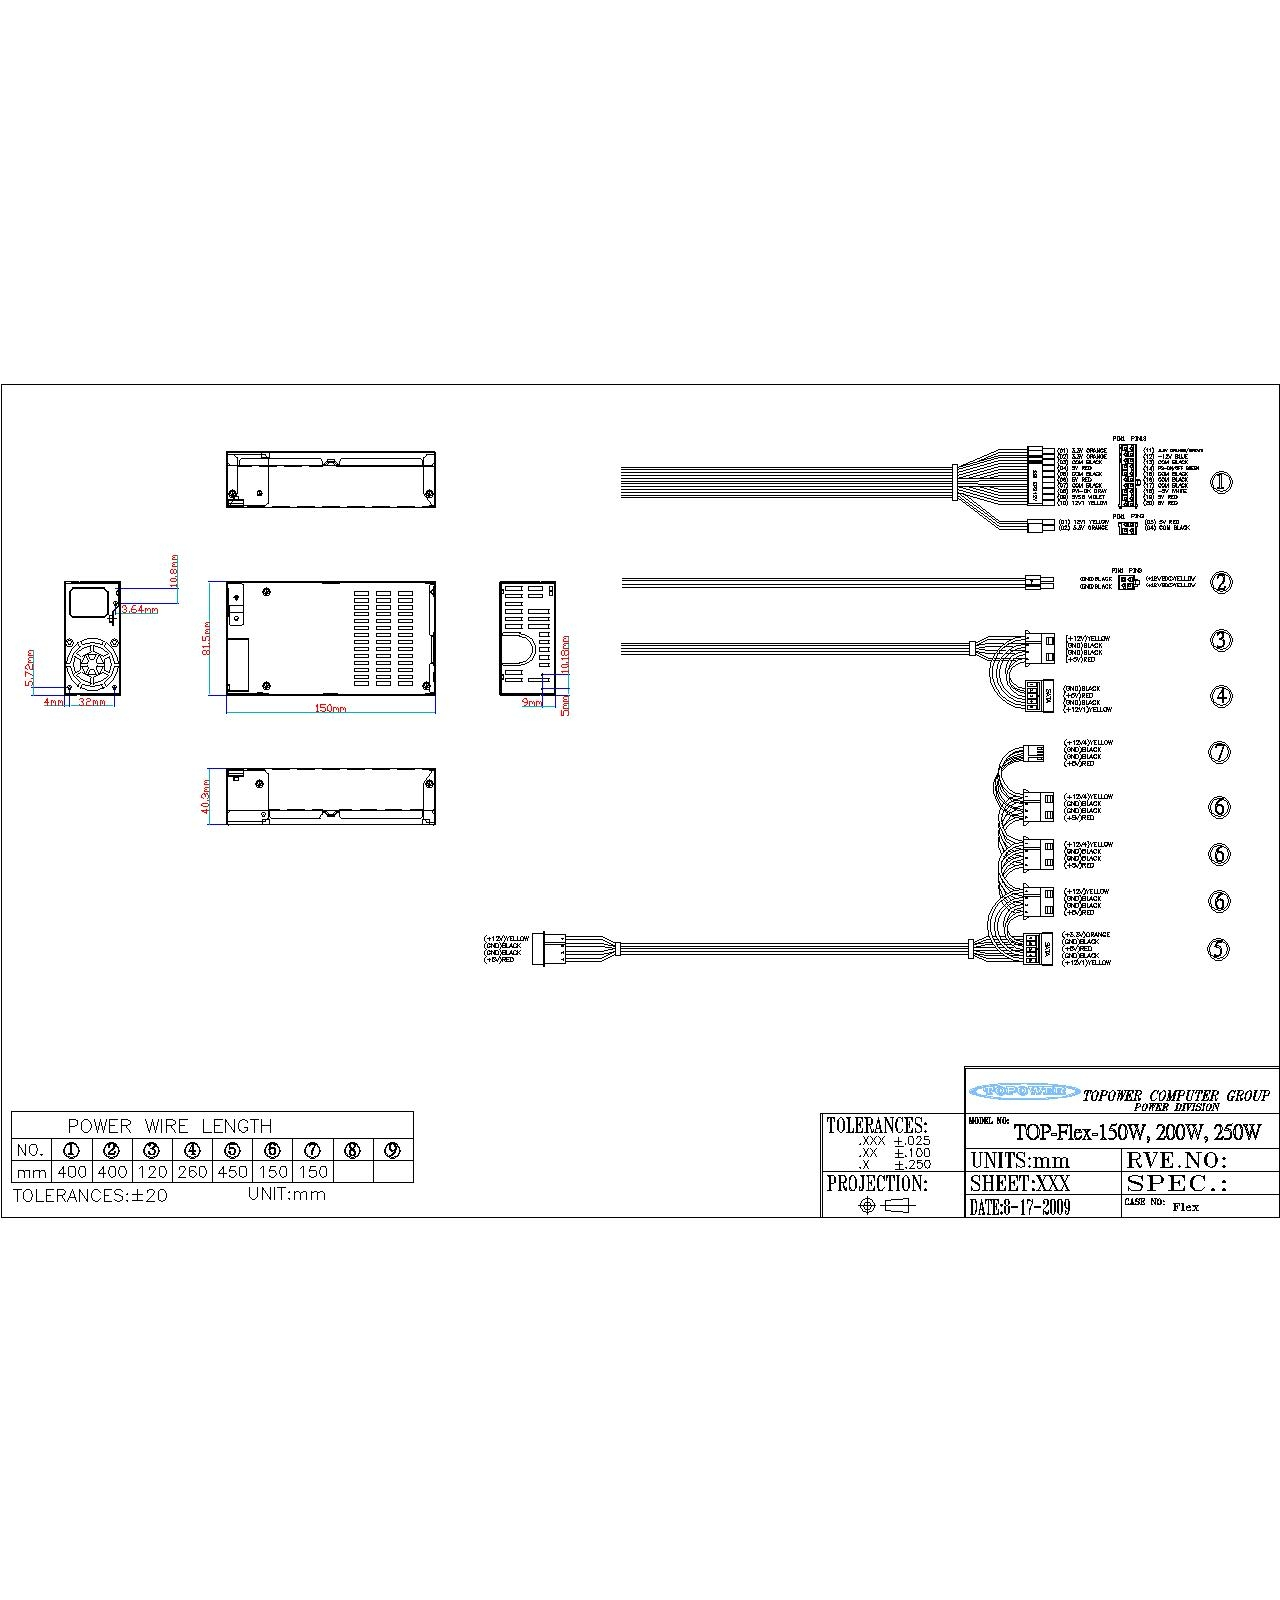 Delta 300 Watt Computer Power Supply Schematic Trusted Schematics Diagram Y Atx 12v2 Product Wiring Diagrams U2022 Of